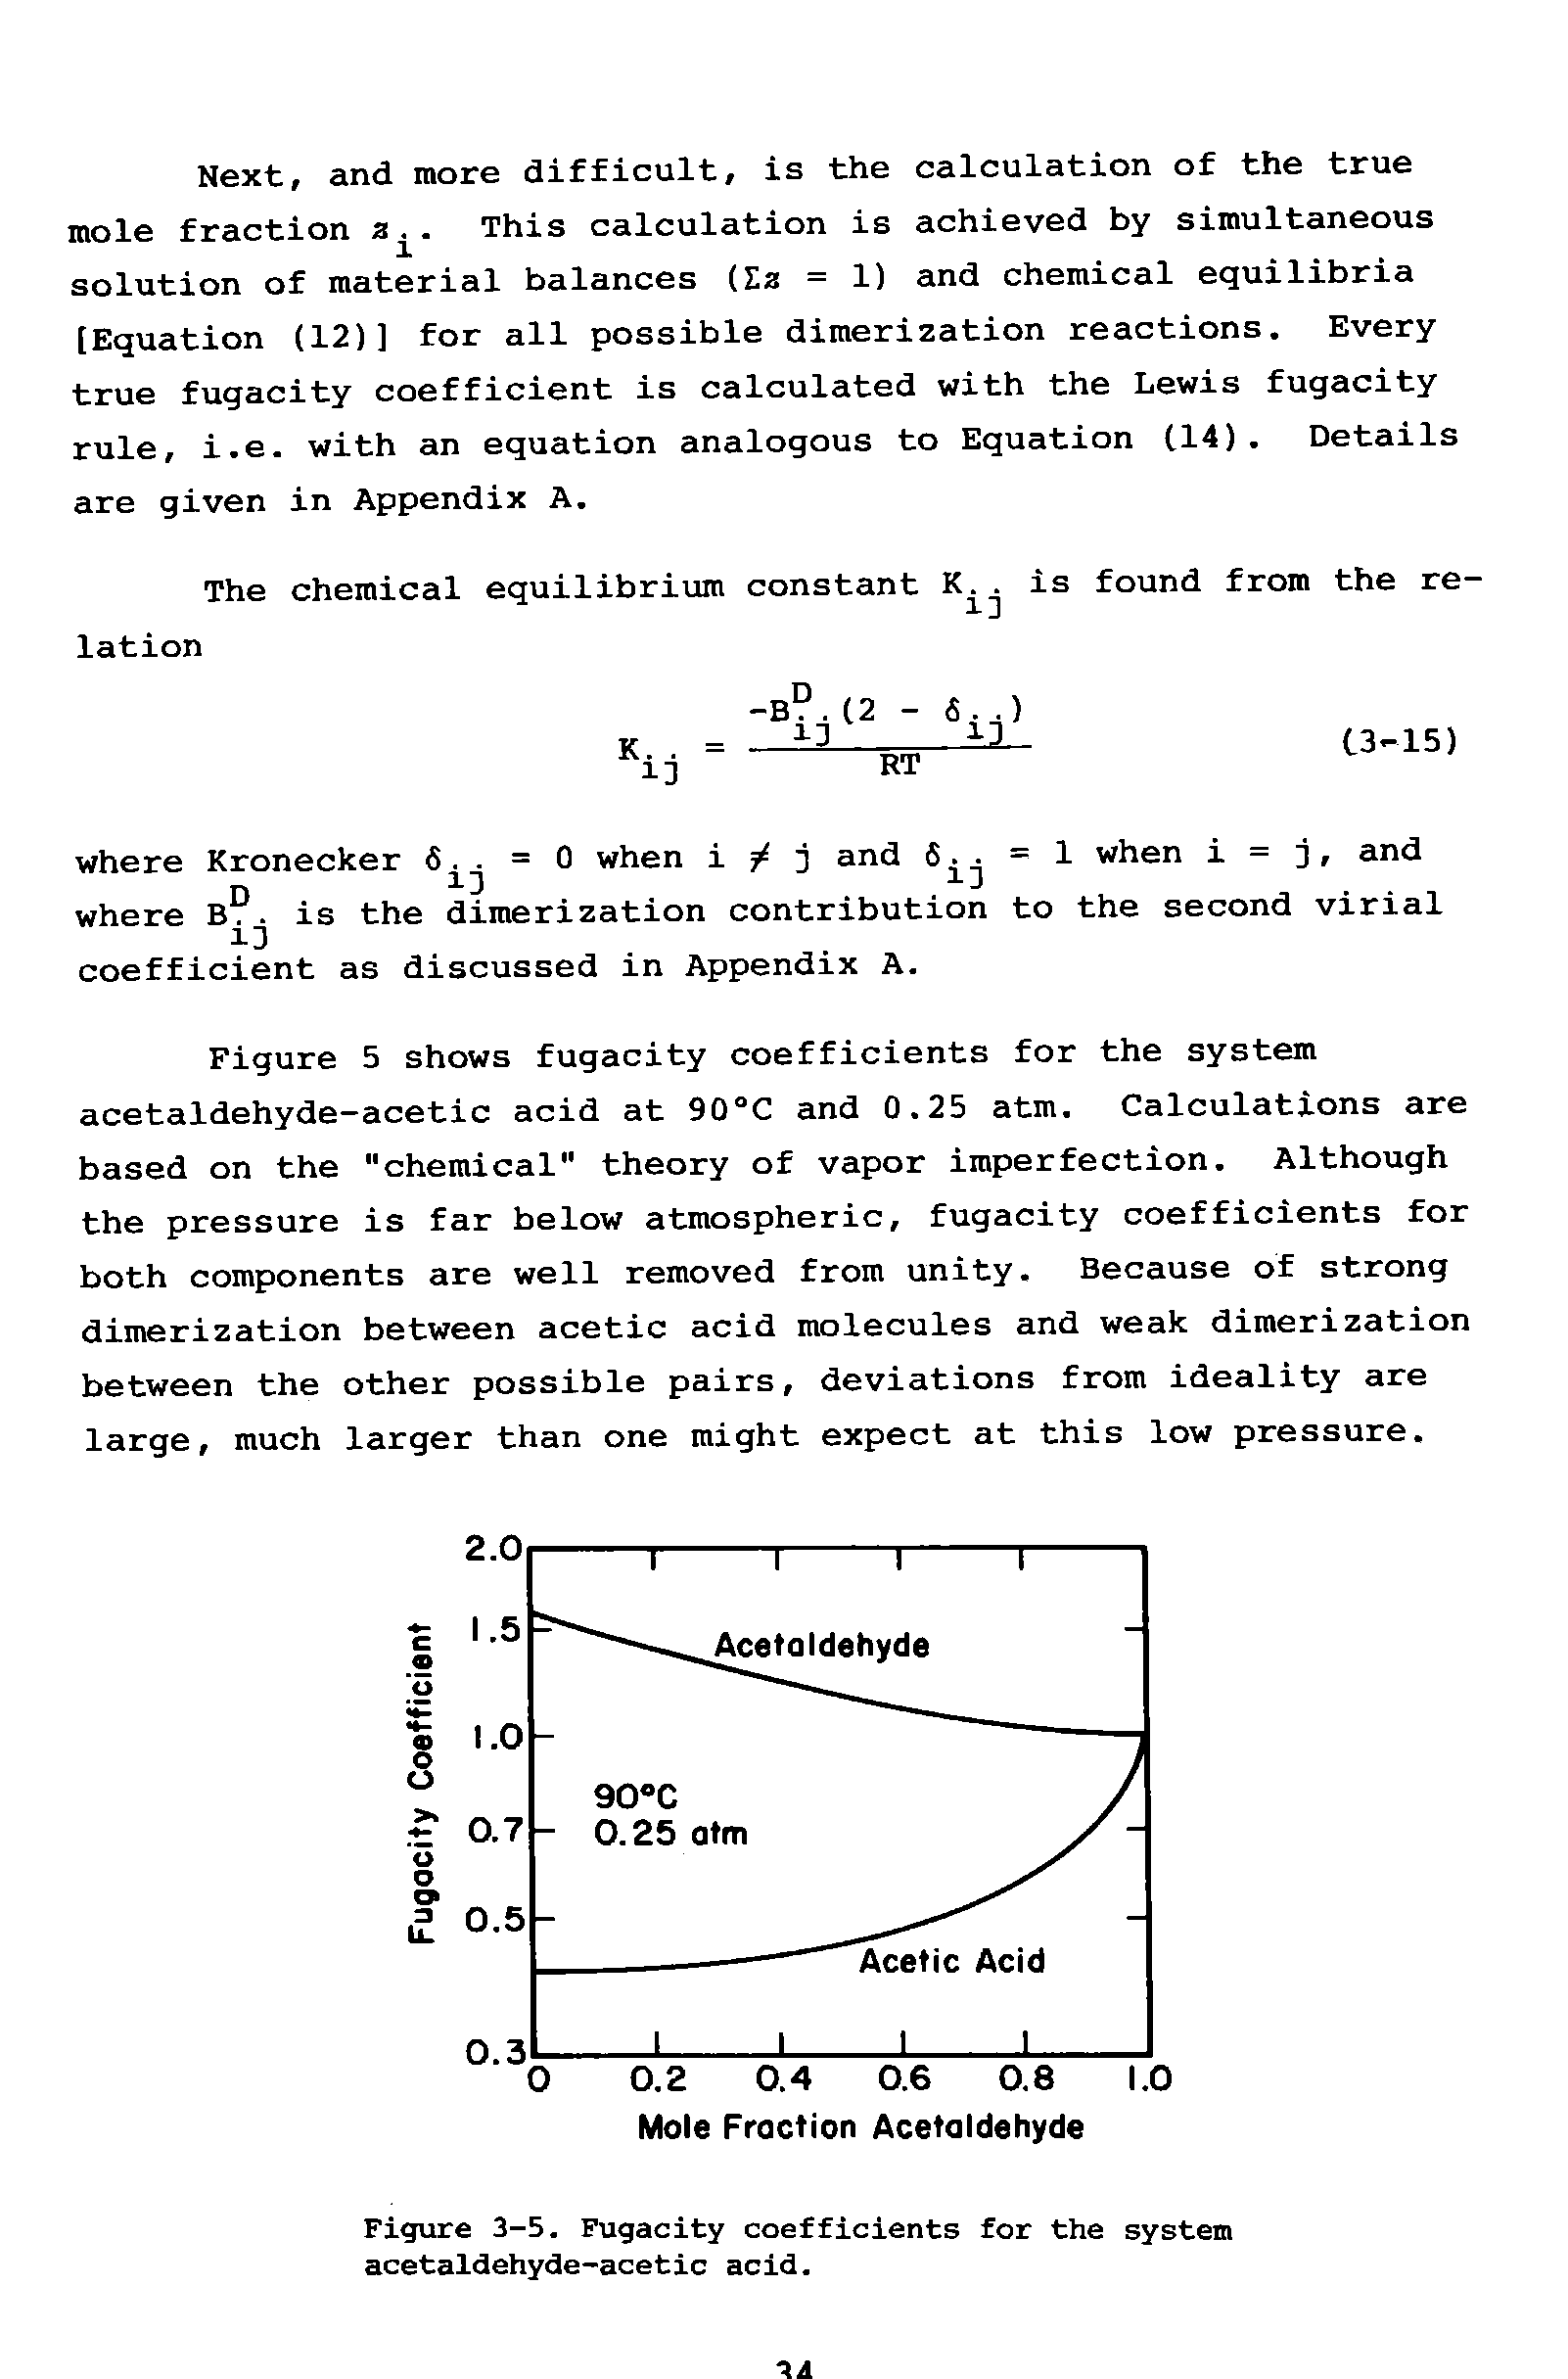 Figure 3-5. Fugacity coefficients for the system acetaldehyde-acetic acid.